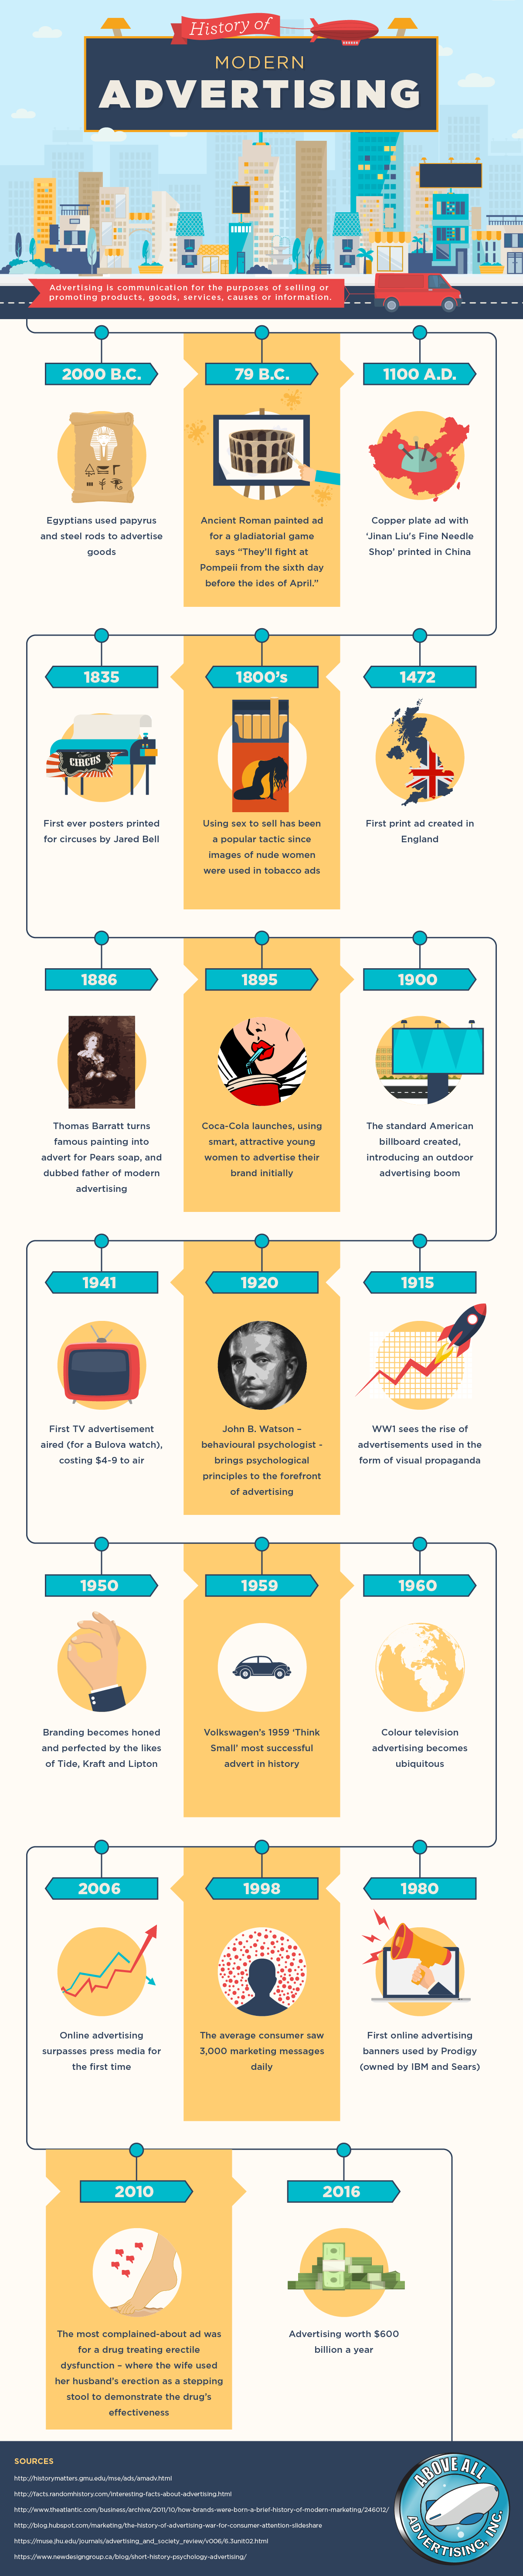 A Brief Look at Modern Advertising History #infographic